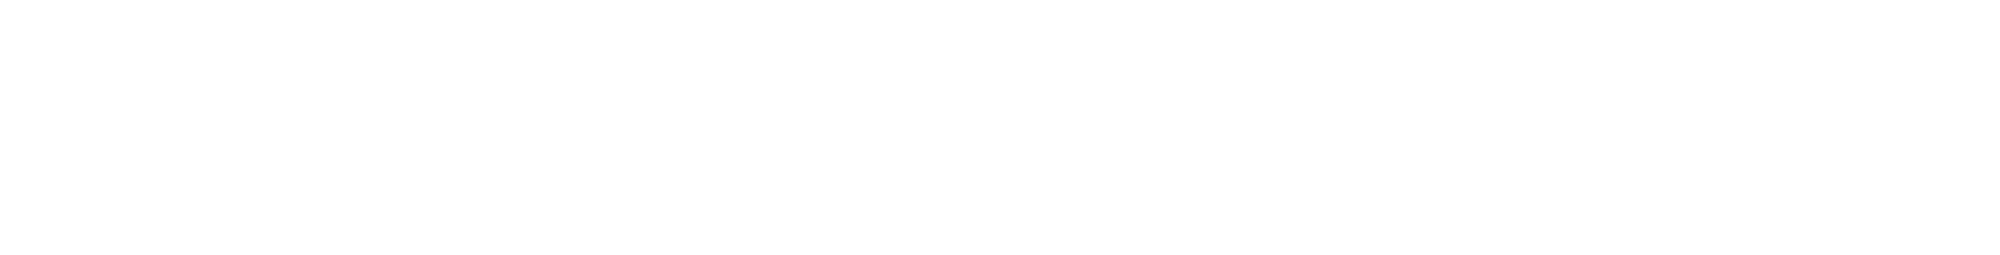 Miami University Libraries